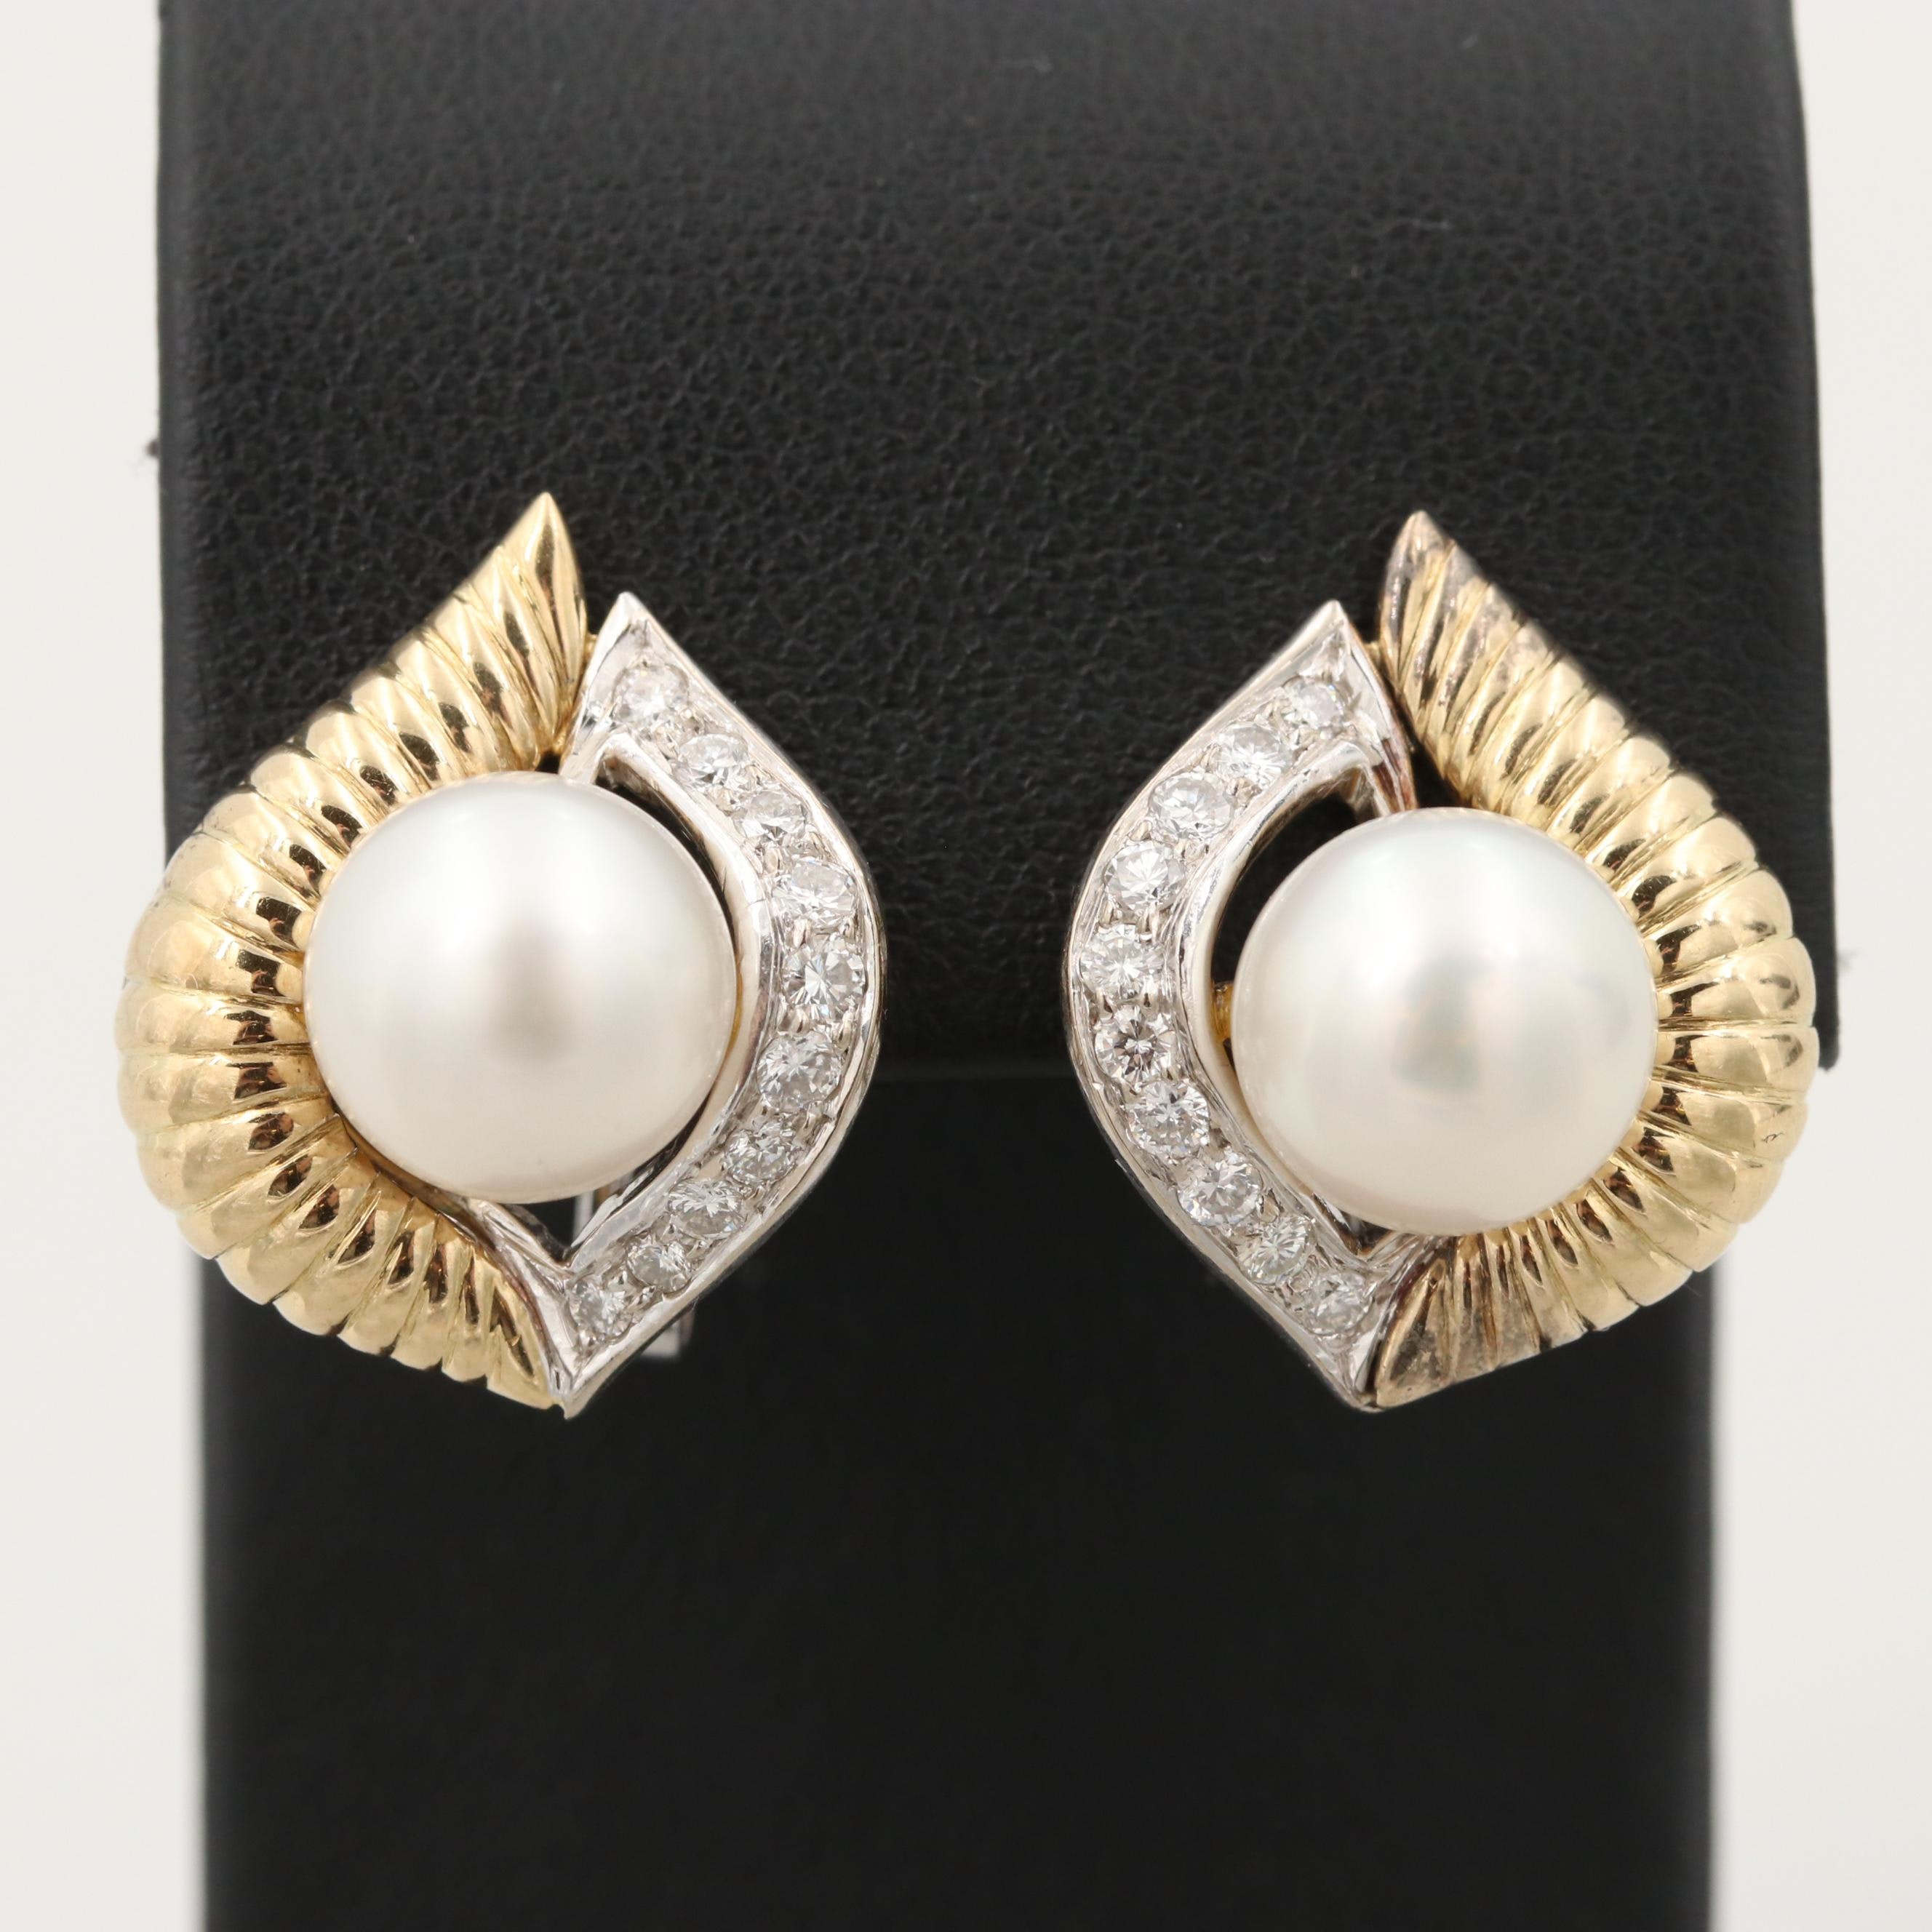 18K Yellow and White Gold Cultured Pearl and Diamond Earrings